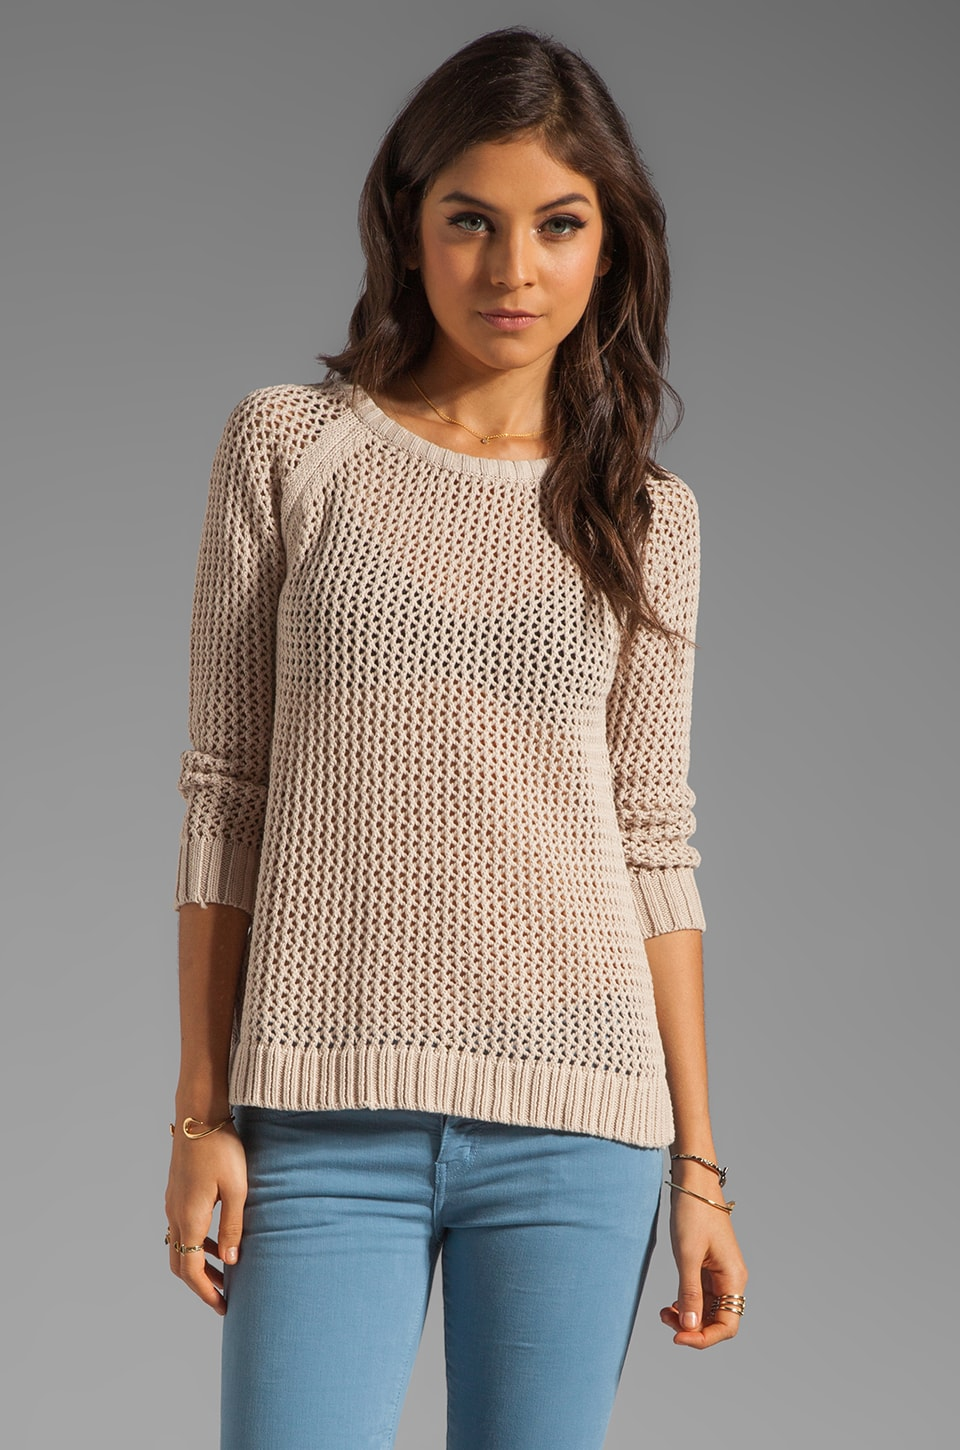 PJK Patterson J. Kincaid Nani Hi Lo Sweater in Candied Ginger